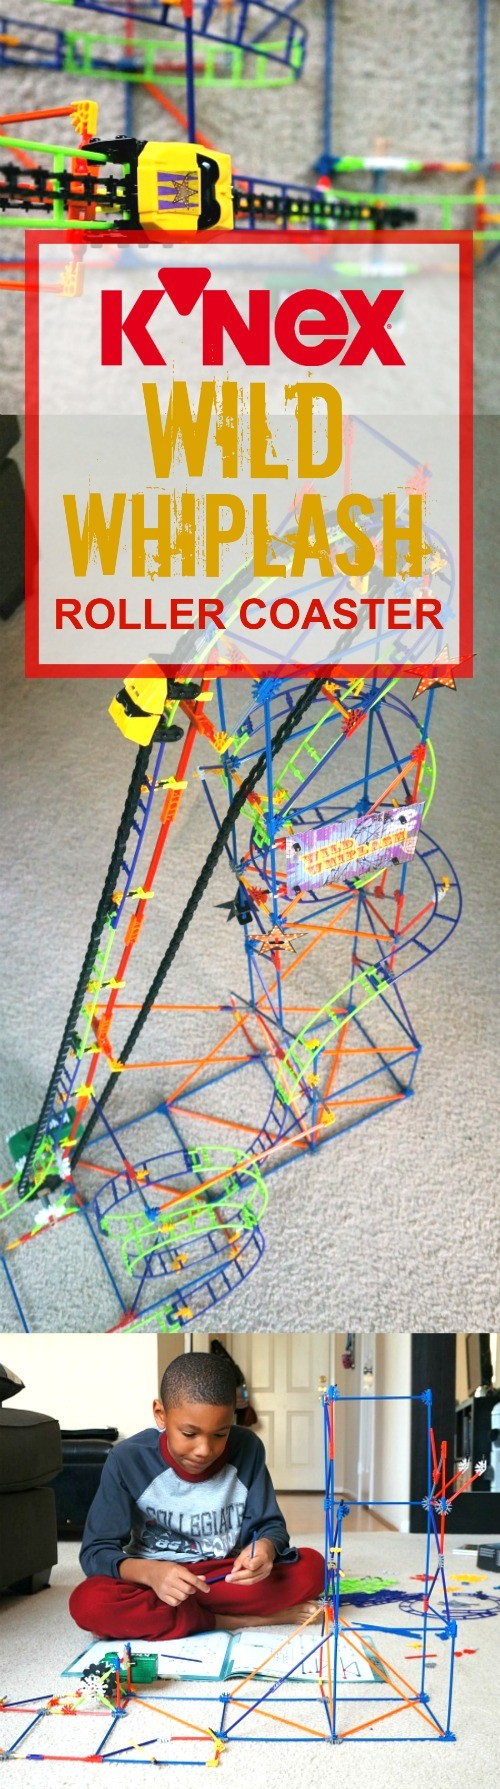 The K'NEX Wild Whiplash Roller Coaster is the perfect holiday STEM gifts for kids! Science, technology, engineering, and math (STEM) are the top sectors that kids are learning these days. With hundreds of pieces and a motorized chain lift, your future engineers will love building this and watching it go!